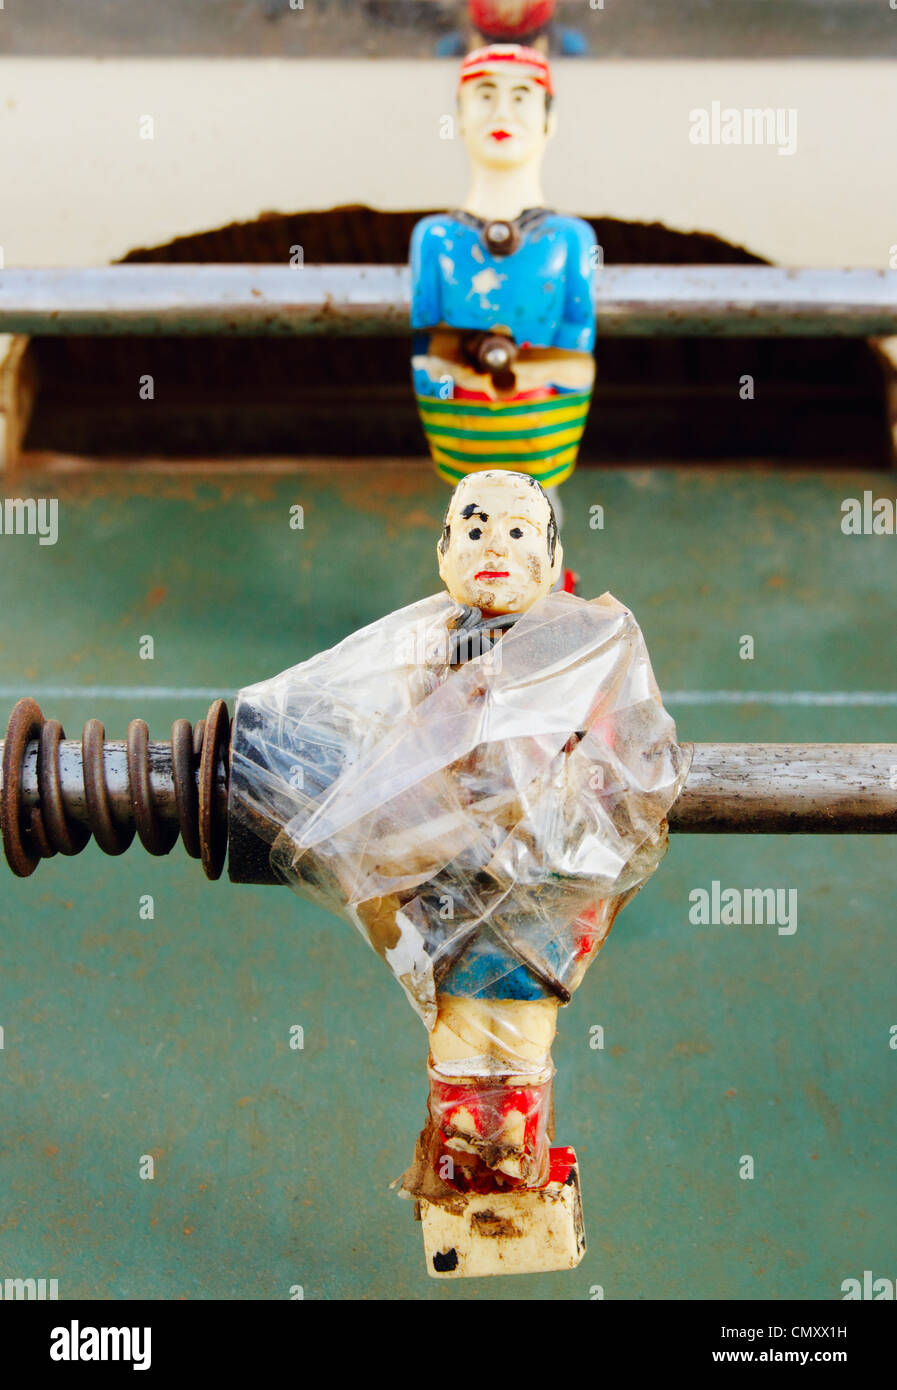 Broken and repaired table football players - Stock Image